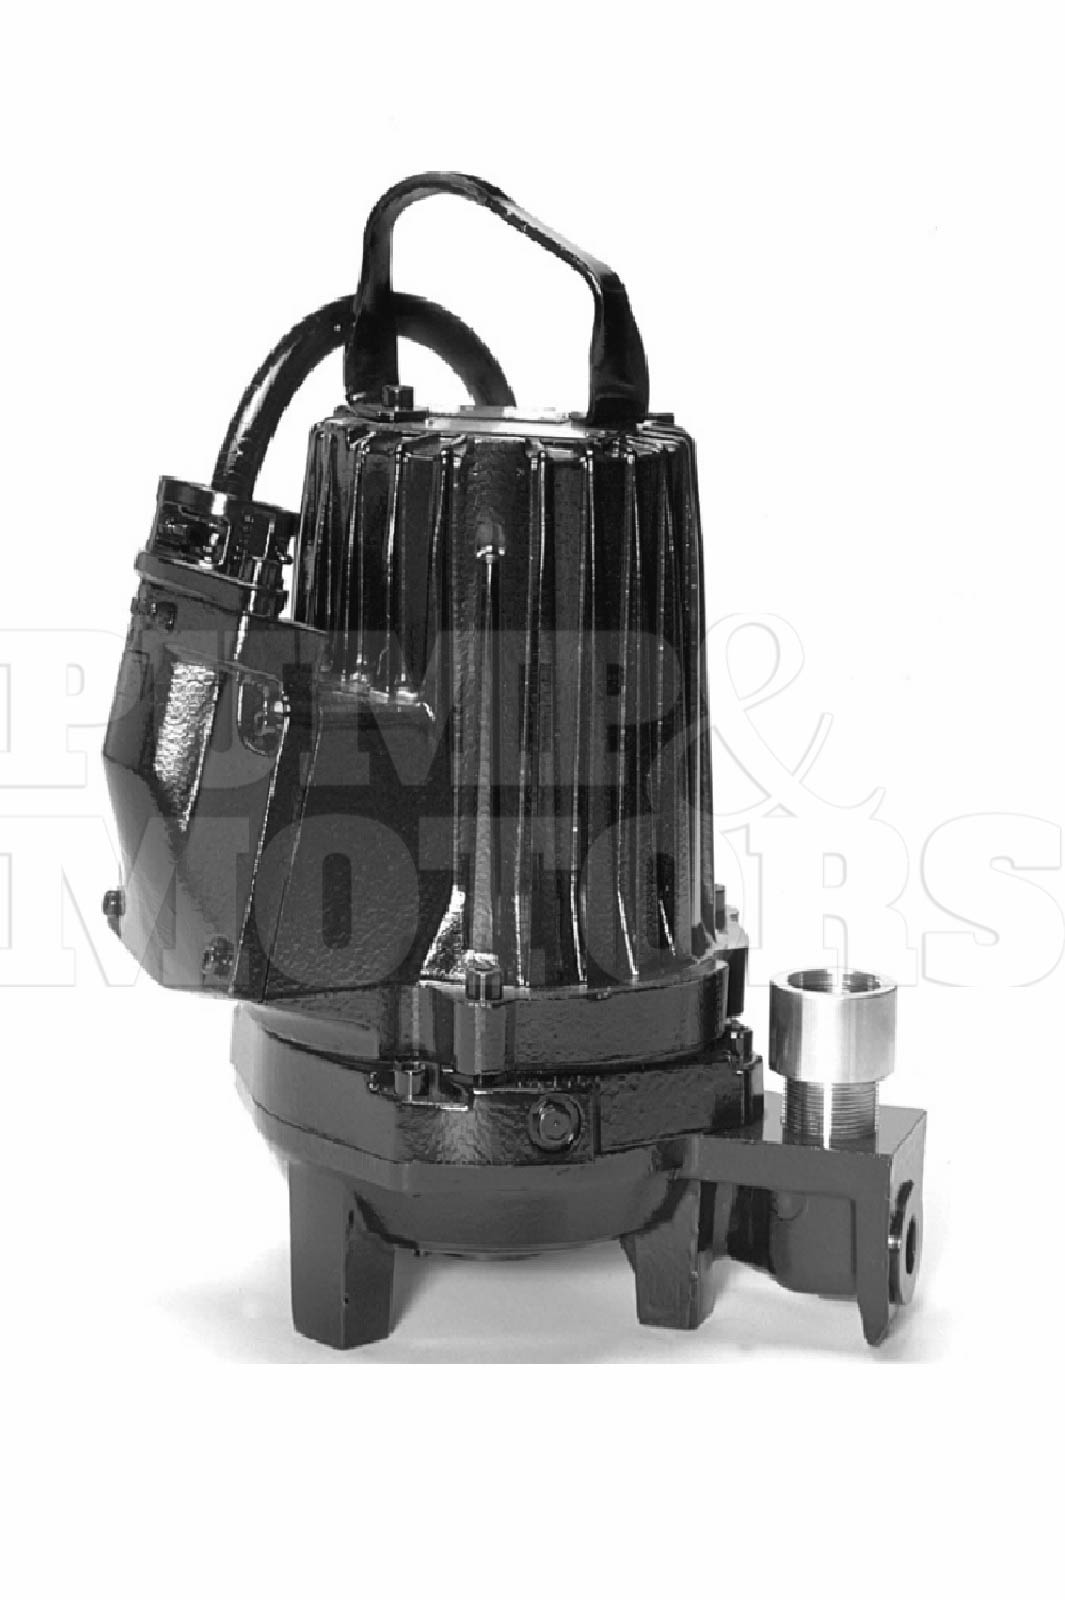 Goulds 1GA81H1GDX 5.4HP Submersible Grinder Pump 230V 1 Phase